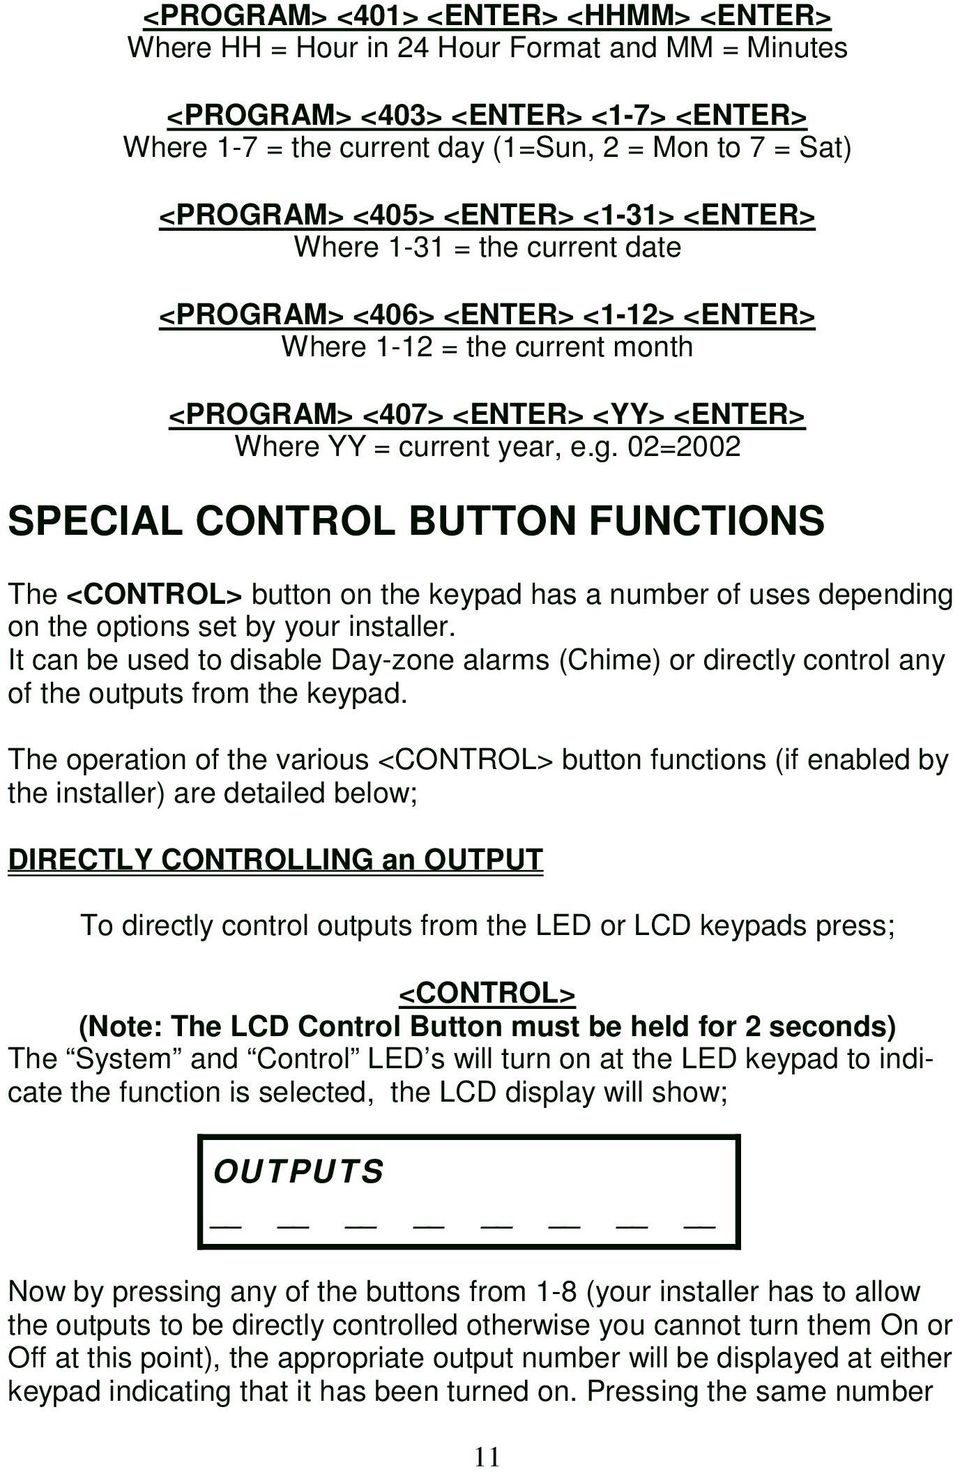 02=2002 SPECIAL CONTROL BUTTON FUNCTIONS The <CONTROL> button on the keypad has a number of uses depending on the options set by your installer.